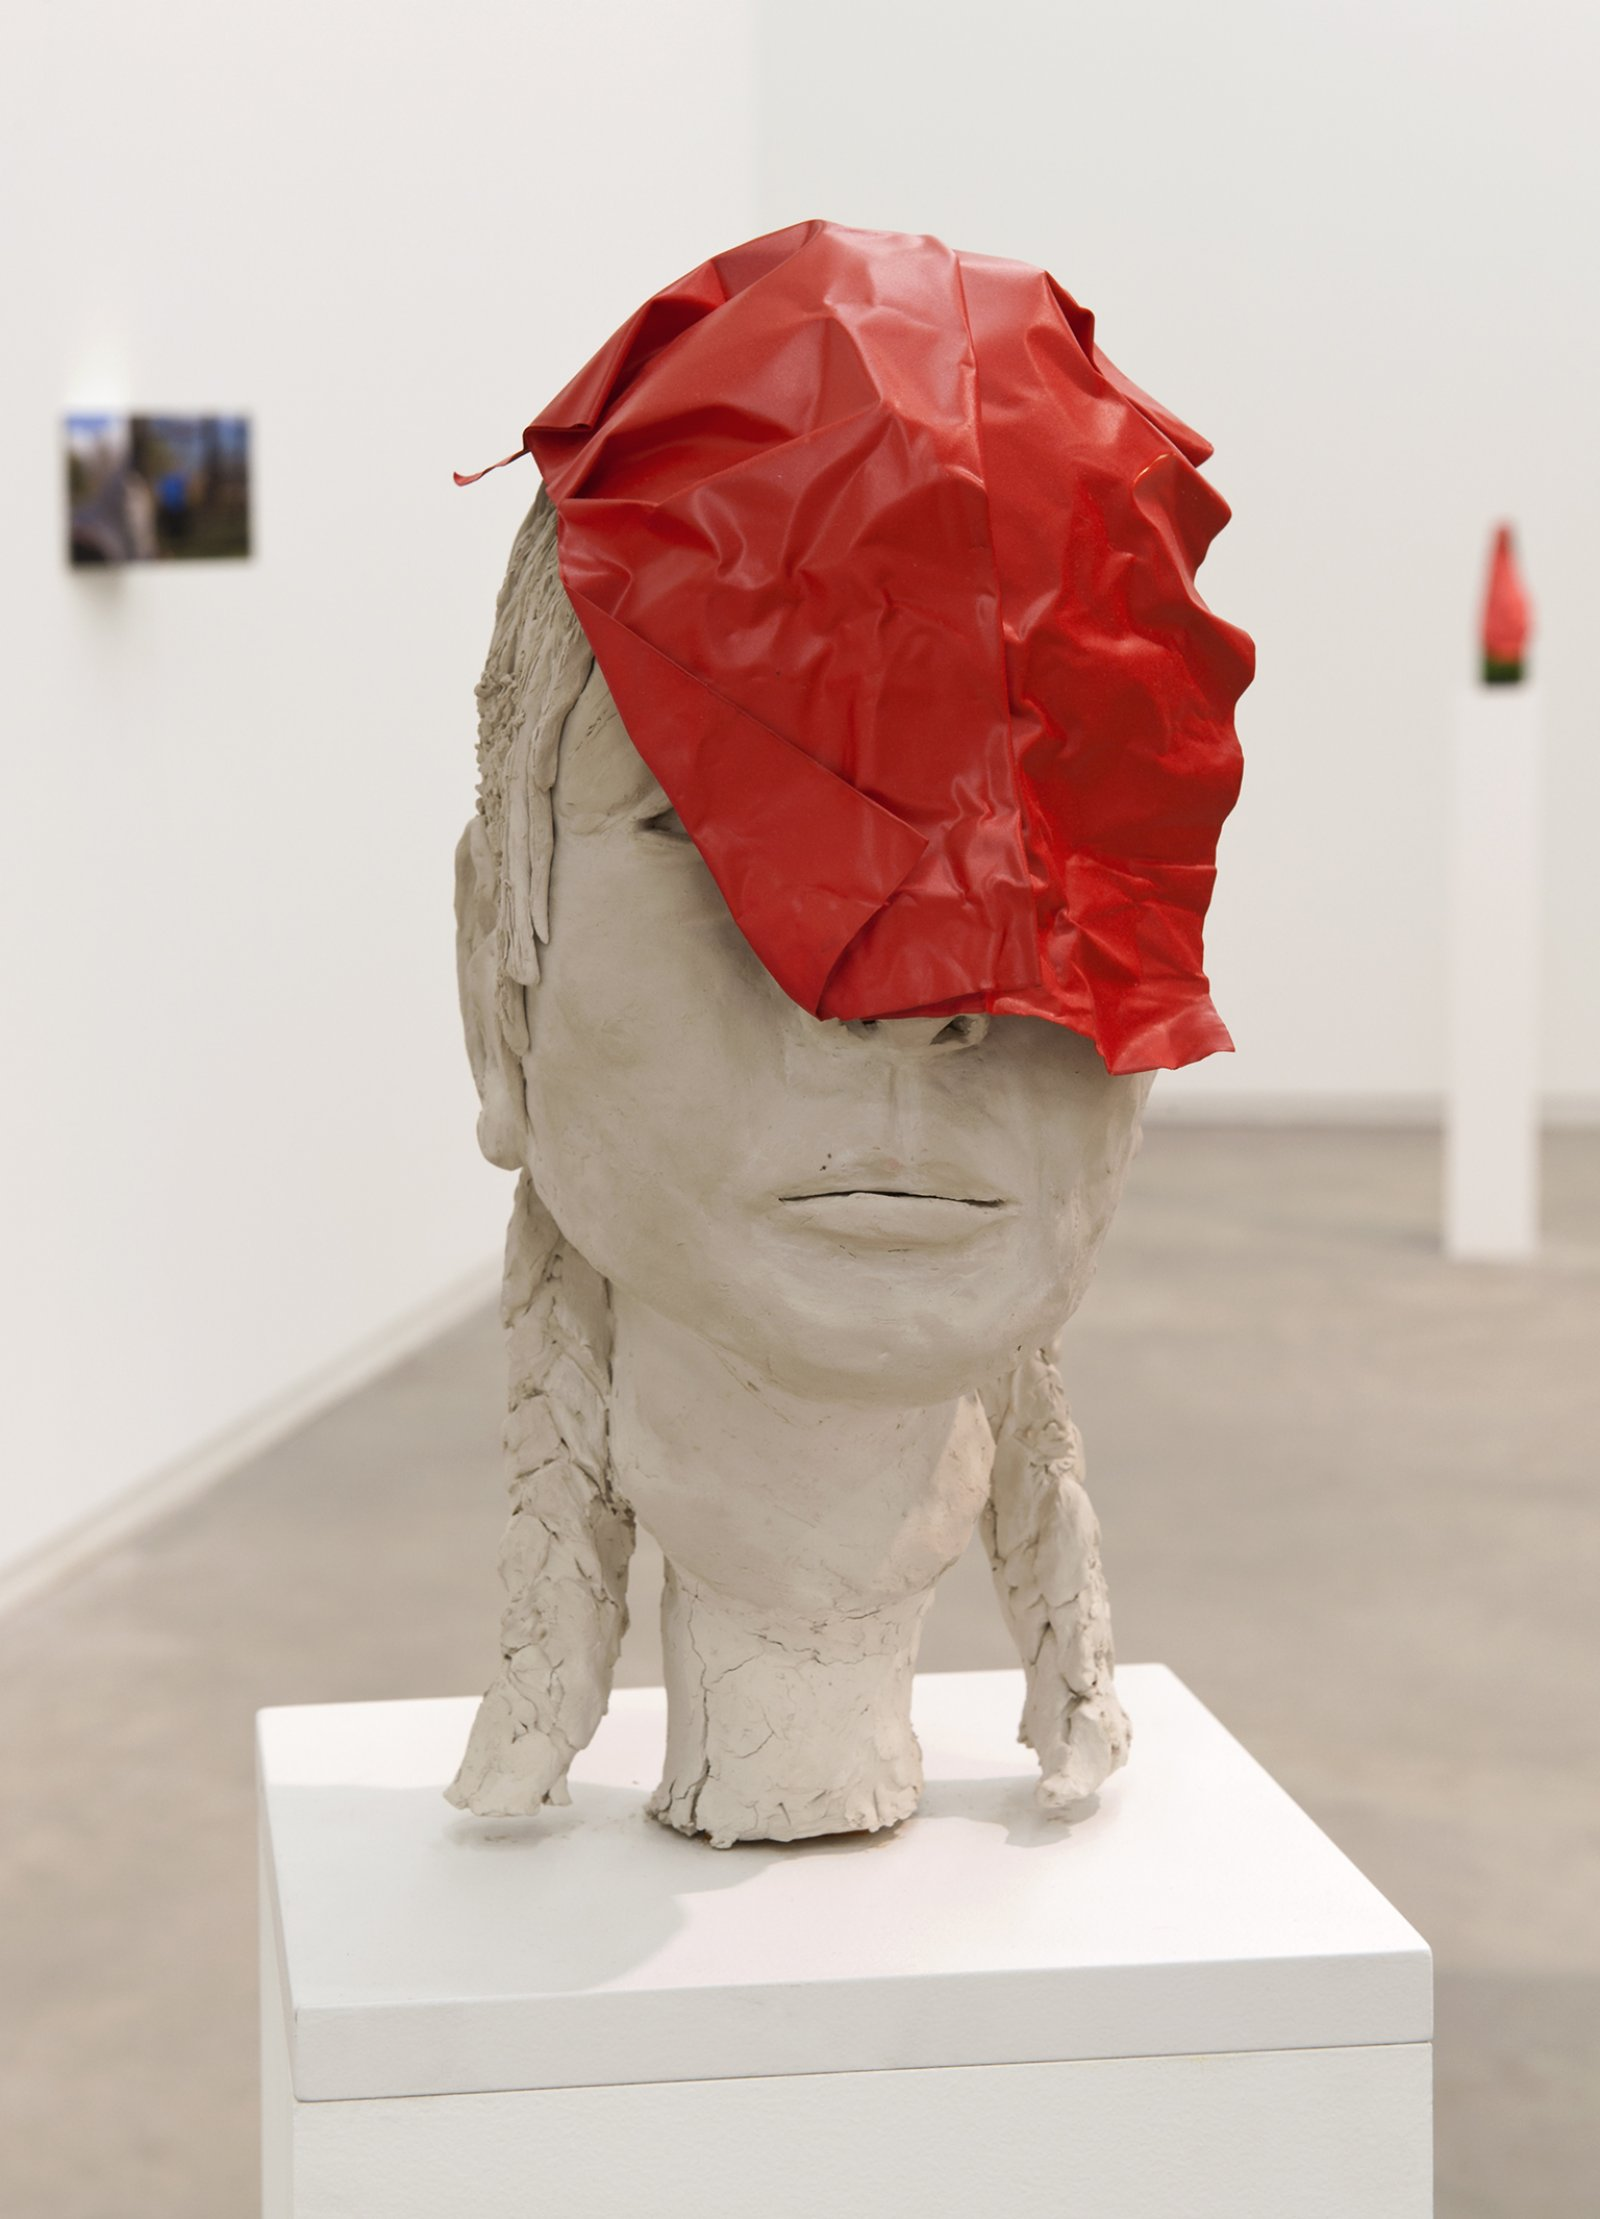 Judy Radul, Object Analysis Spectator Poem (Bust), 2012, painted copper, clay bust, colour photograph on angled mount, bust: 14 x 9 x 9 in. (36 x 23 x 23 cm), plinth: 41 x 9 x 9 in. (104 x 28 x 23 cm), photo: 8 x 11 x 5 in. (20 x 28 x 73)   by Judy Radul